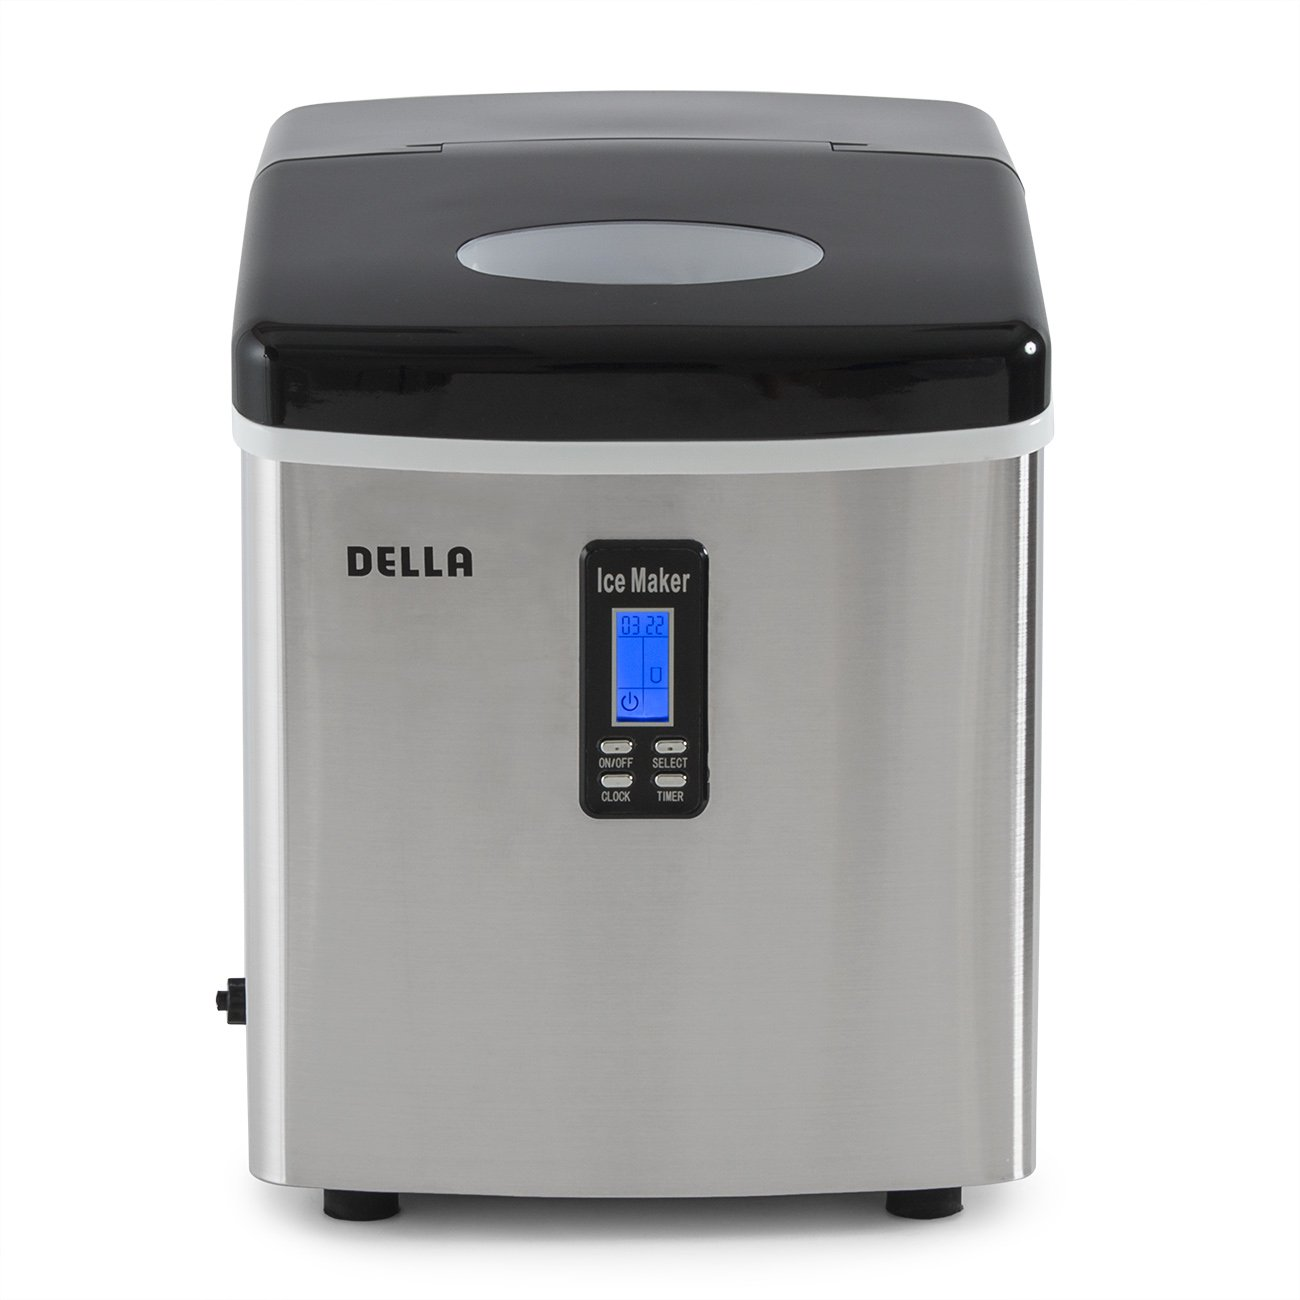 Black DELLA Portable Electric Ice Maker High Capacity Easy-Touch Button Up to 26 lbs per day 2 Selectable Cube Sizes